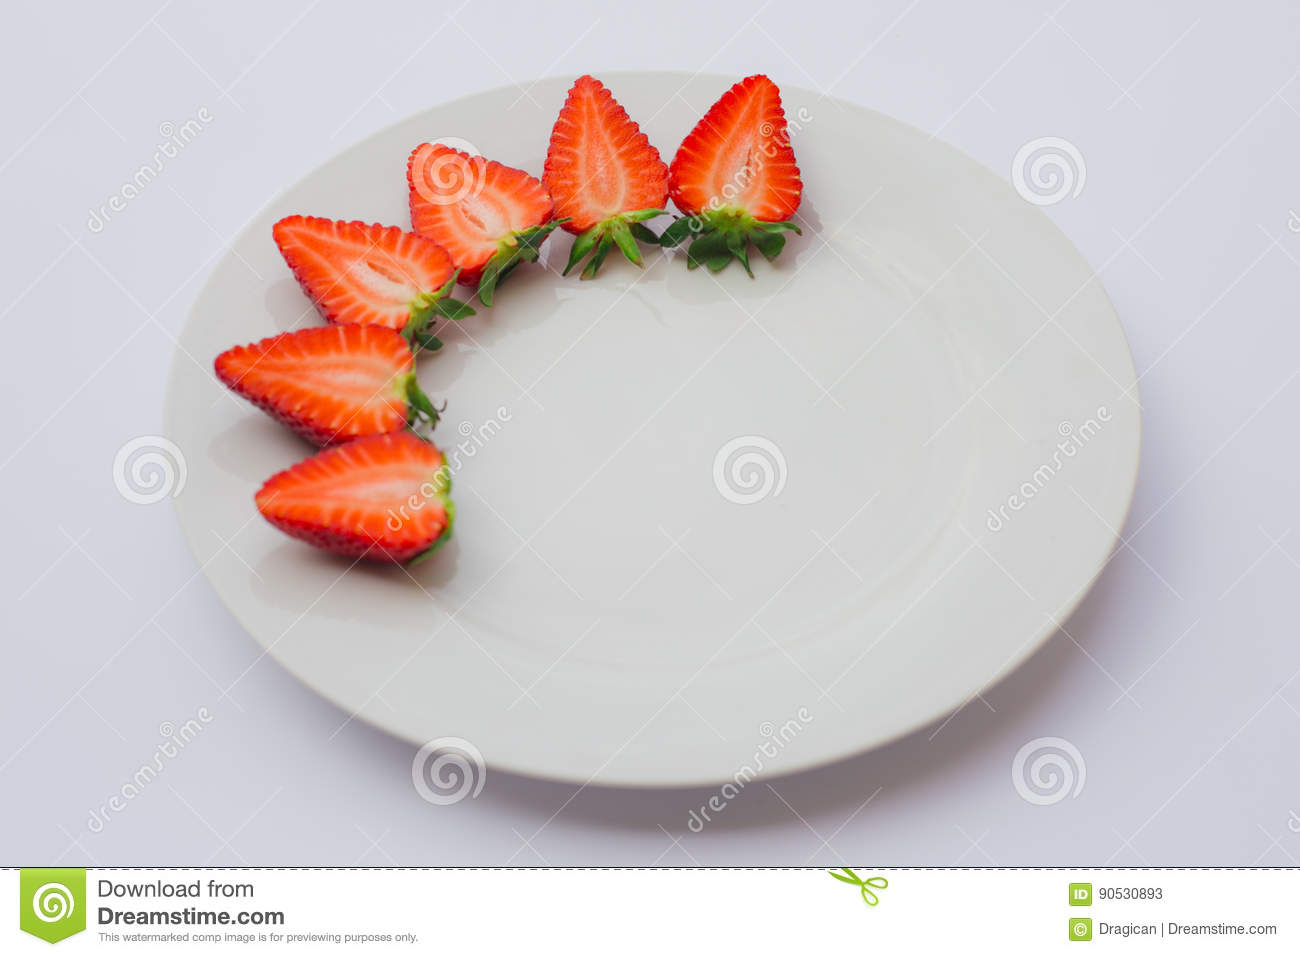 Fresh organic strawberries halved and decorated on a white plate.